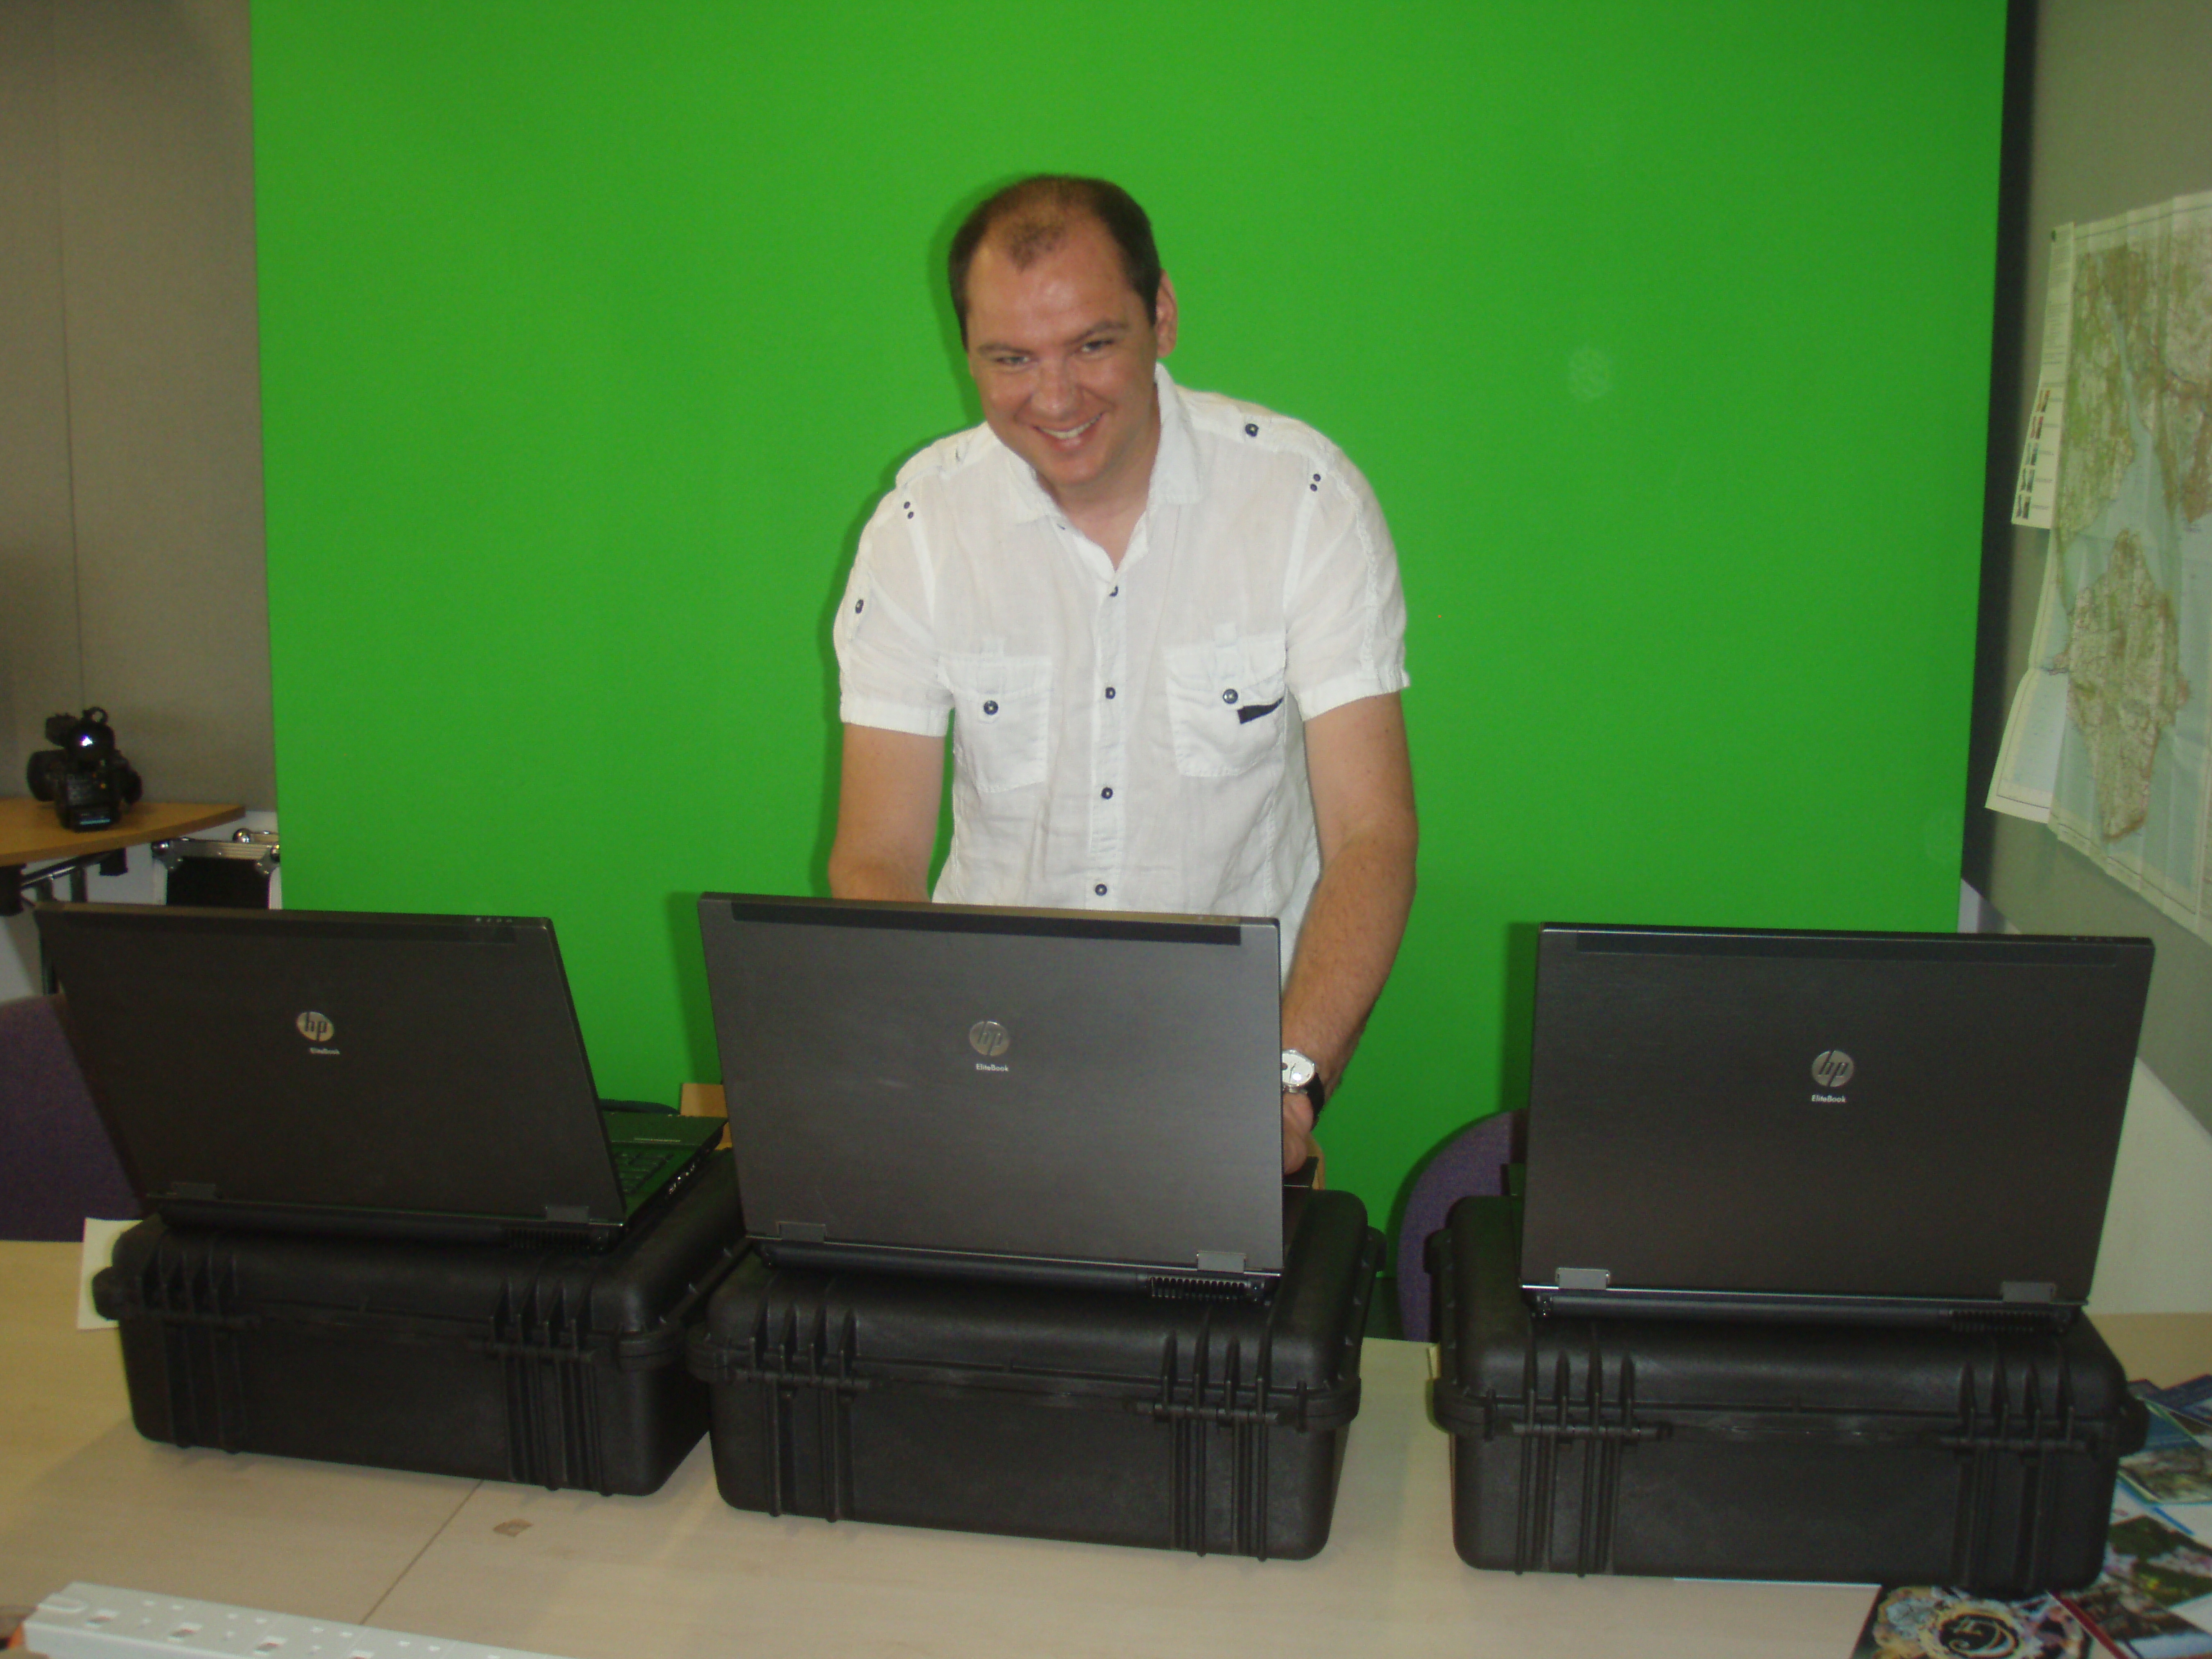 setting up laptops